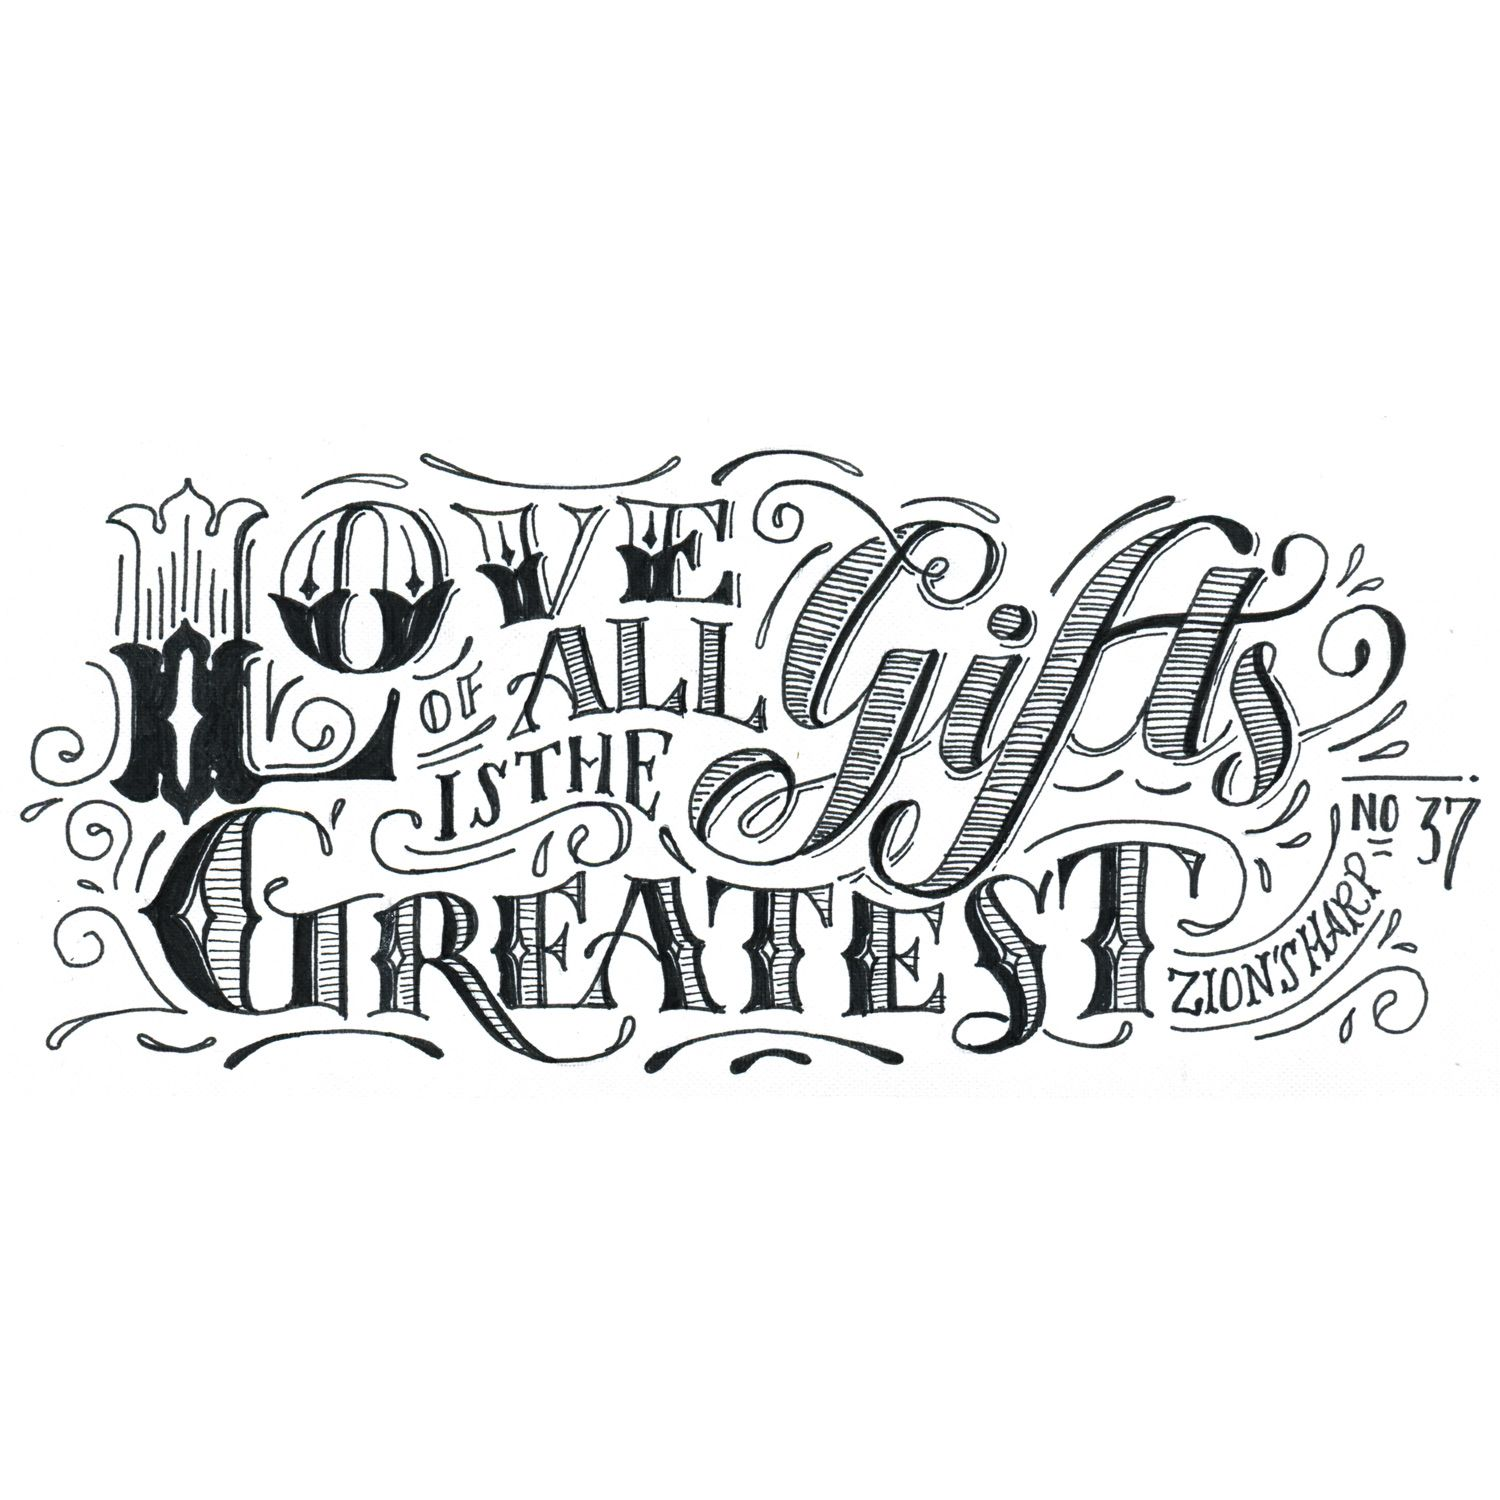 Fruit of the spirit part 1 love of all gifts is the greatest fruit of the spirit part 1 love of all gifts is the greatest the love versesbible negle Images